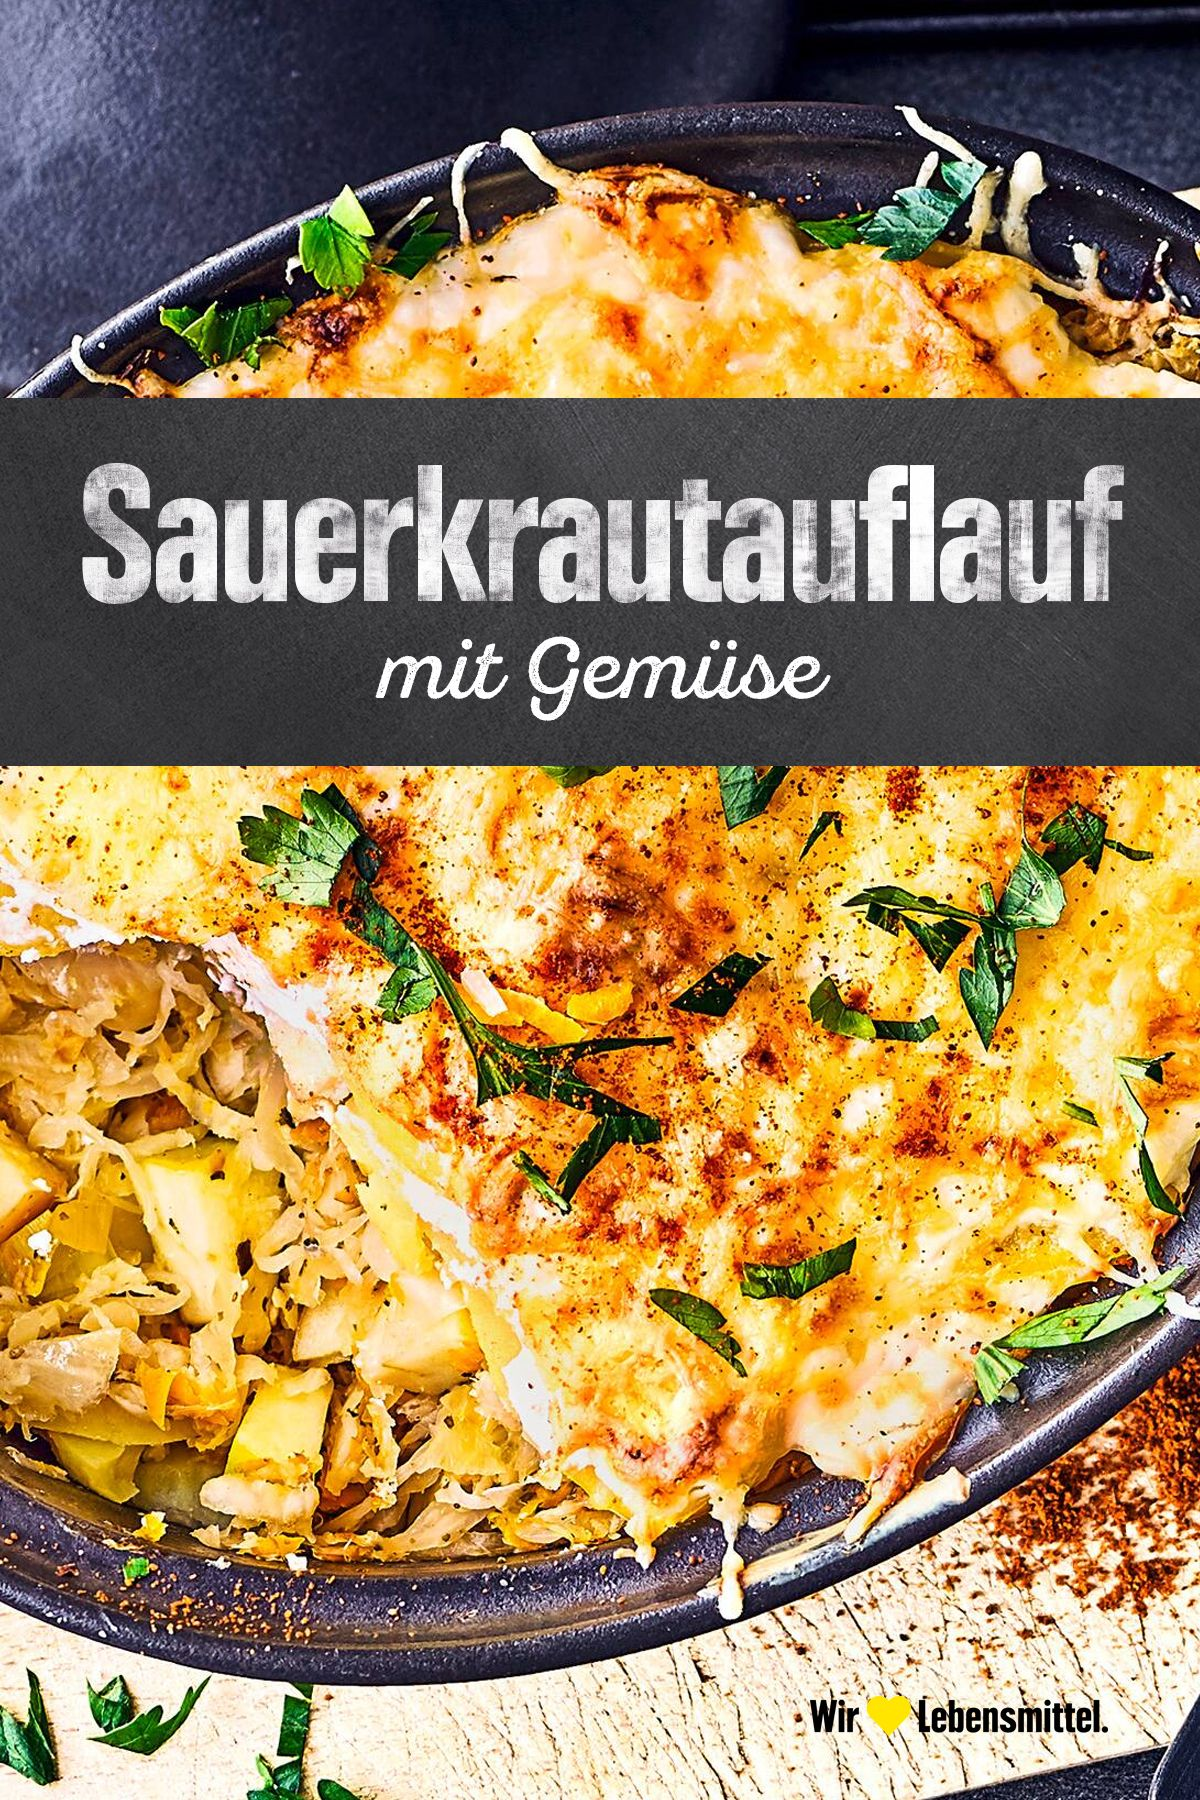 Photo of Sauerkraut and vegetable casserole